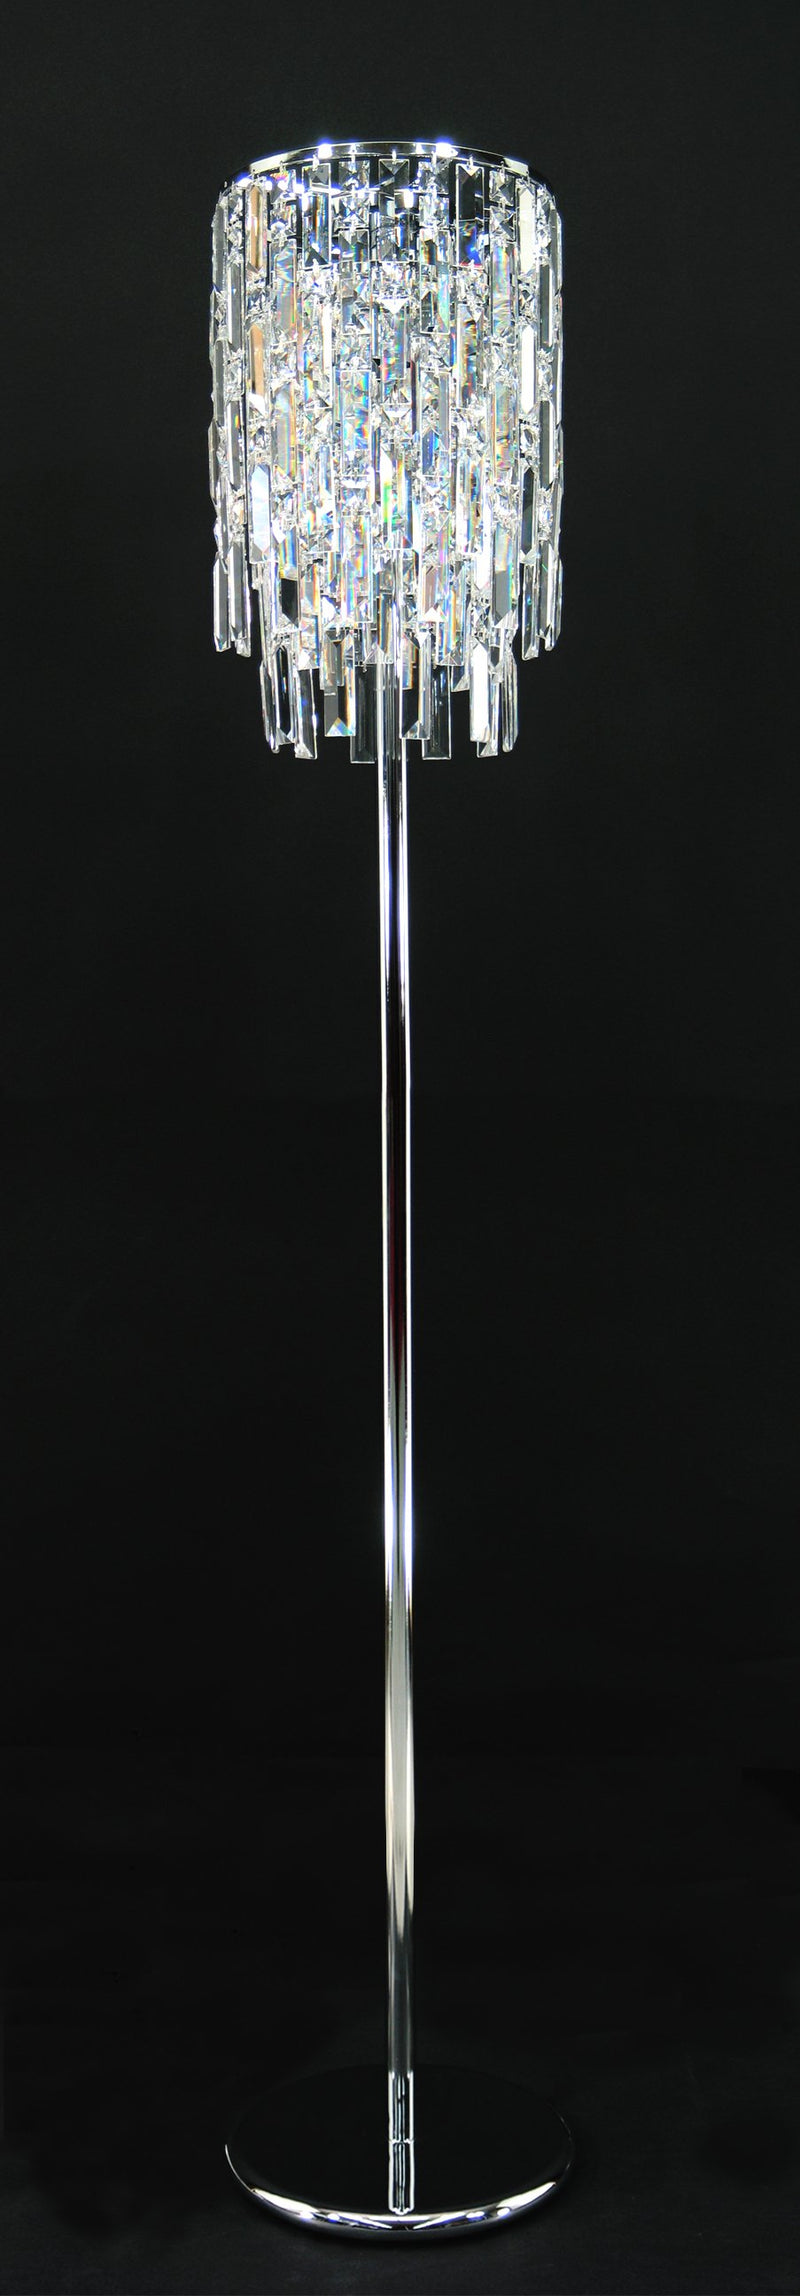 "20610 Crystal Floor Lamp 10"" 3 Light - Asfour Crystal [ST-20610-10""-3L]"